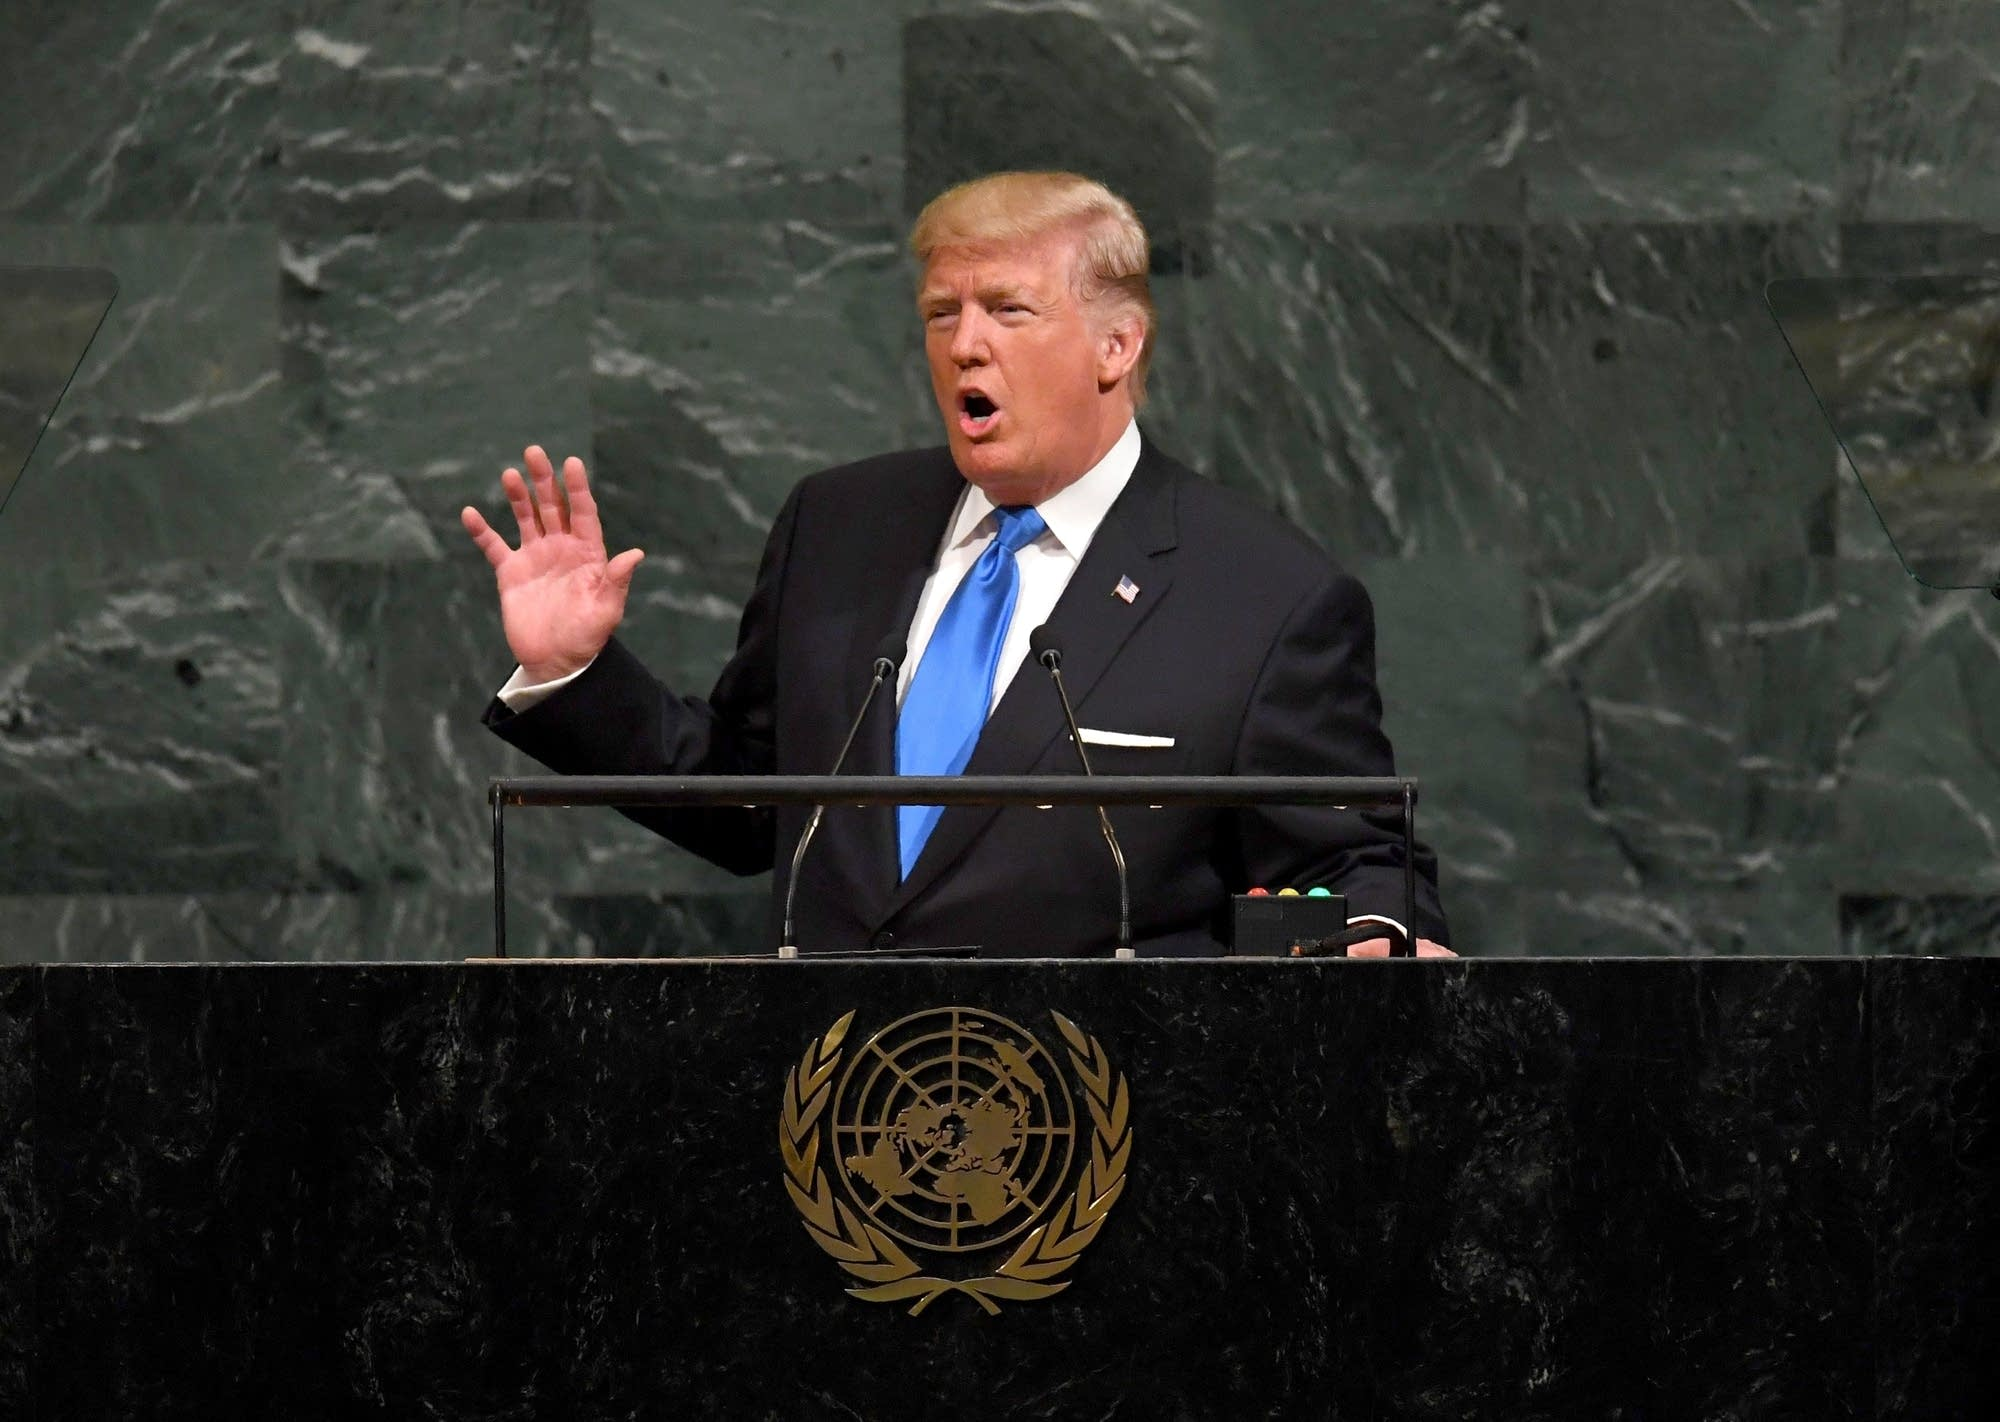 President Trump addresses the U.N. General Assembly.